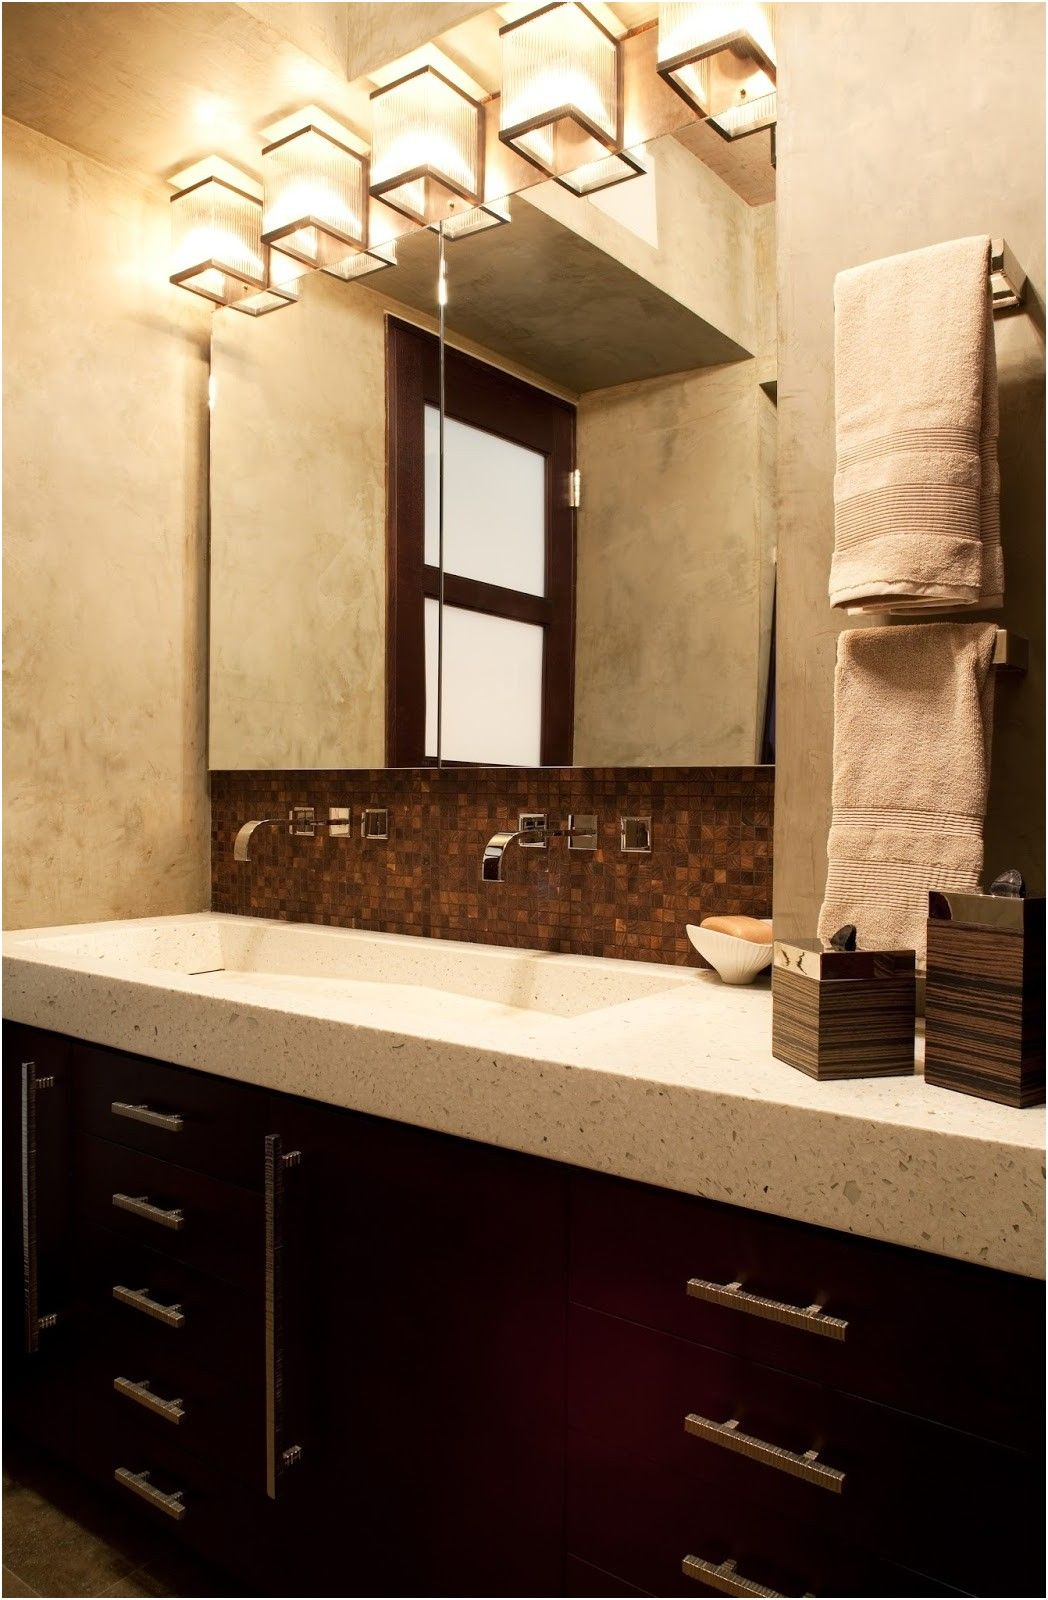 Awesome Ceiling Mounted Bathroom Vanity Light Fixtures